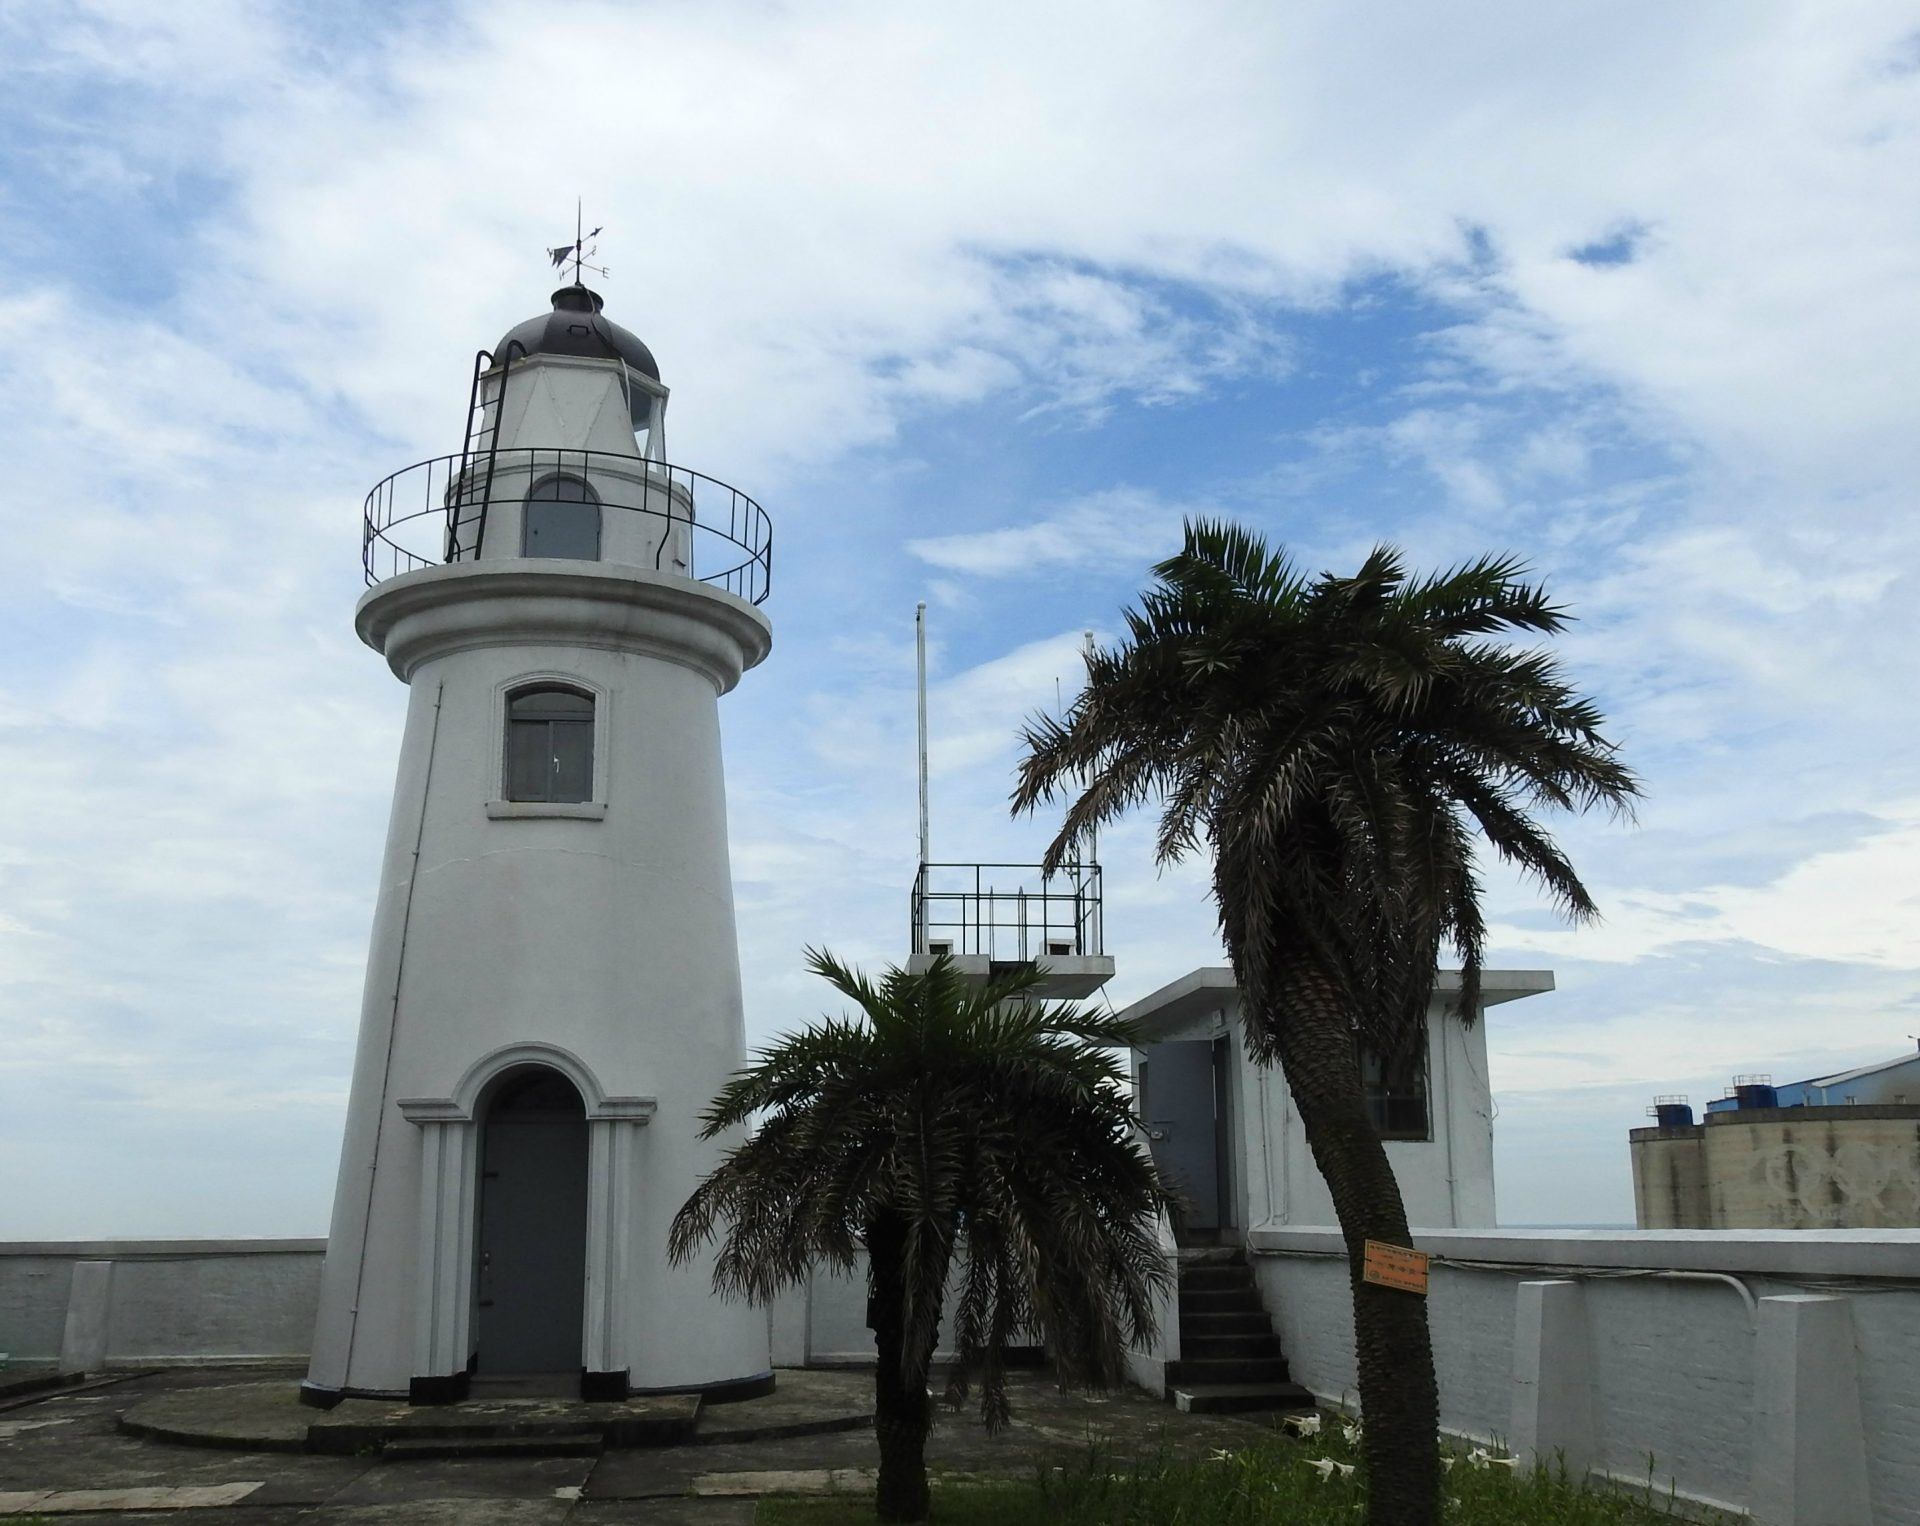 Fugui Cape Lighthouse (富貴角燈塔), equipped with a fog horn, is the northernmost lighthouse in Taiwan. (Image: Billy Shyu/ Vision Times)